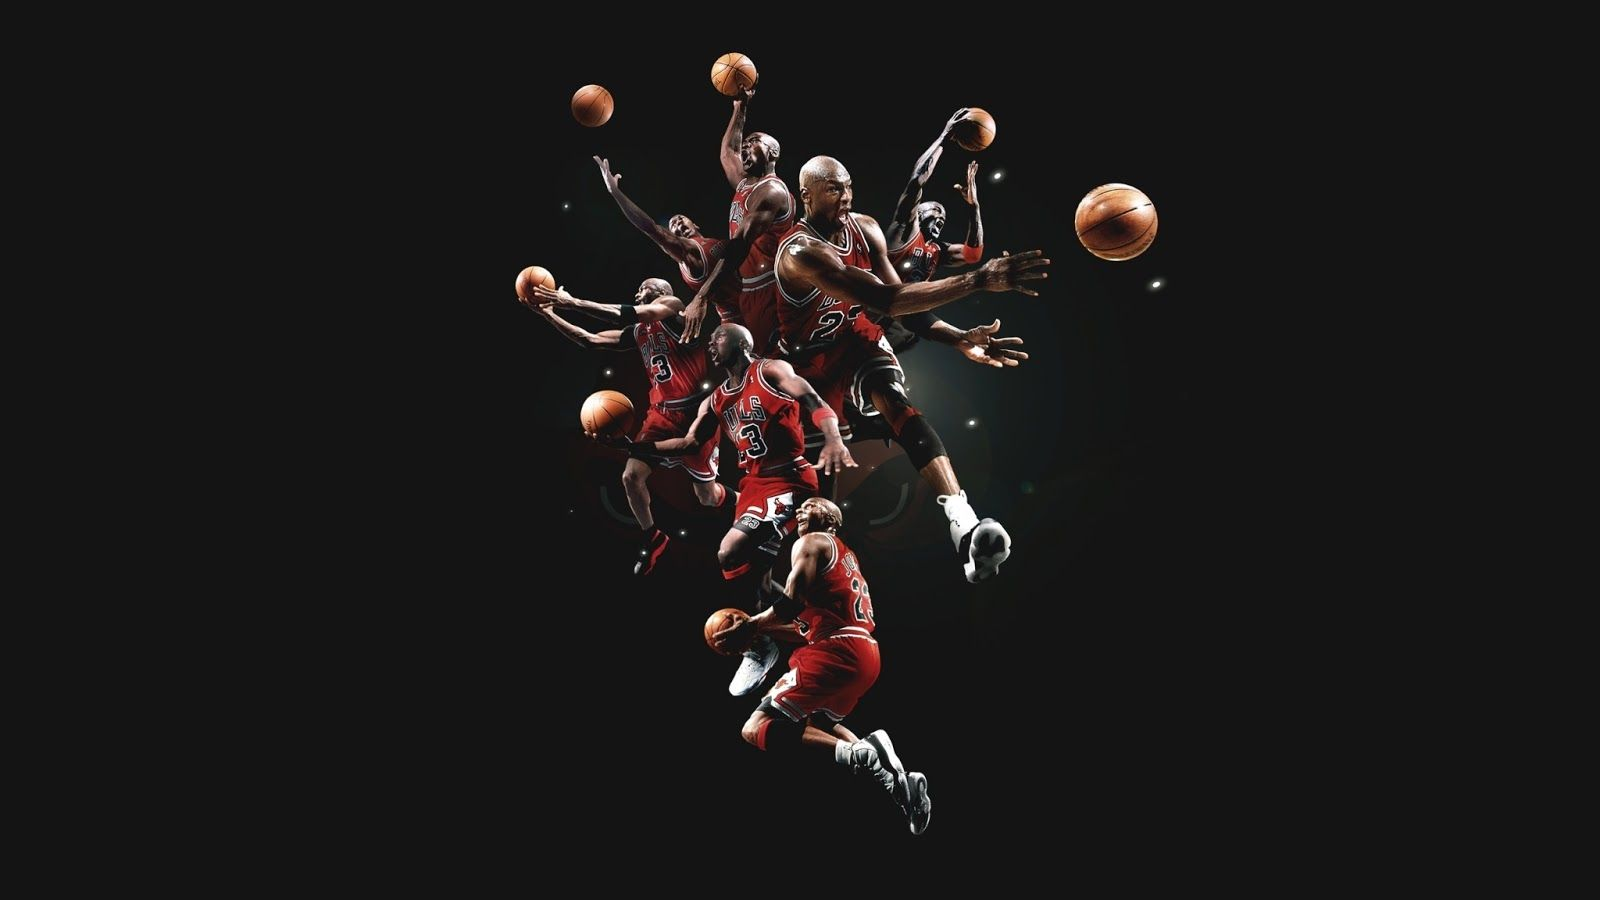 Chicago bulls players basketball chicago bulls basketball basketball chicago bulls basketball club players hd wallpapers voltagebd Images